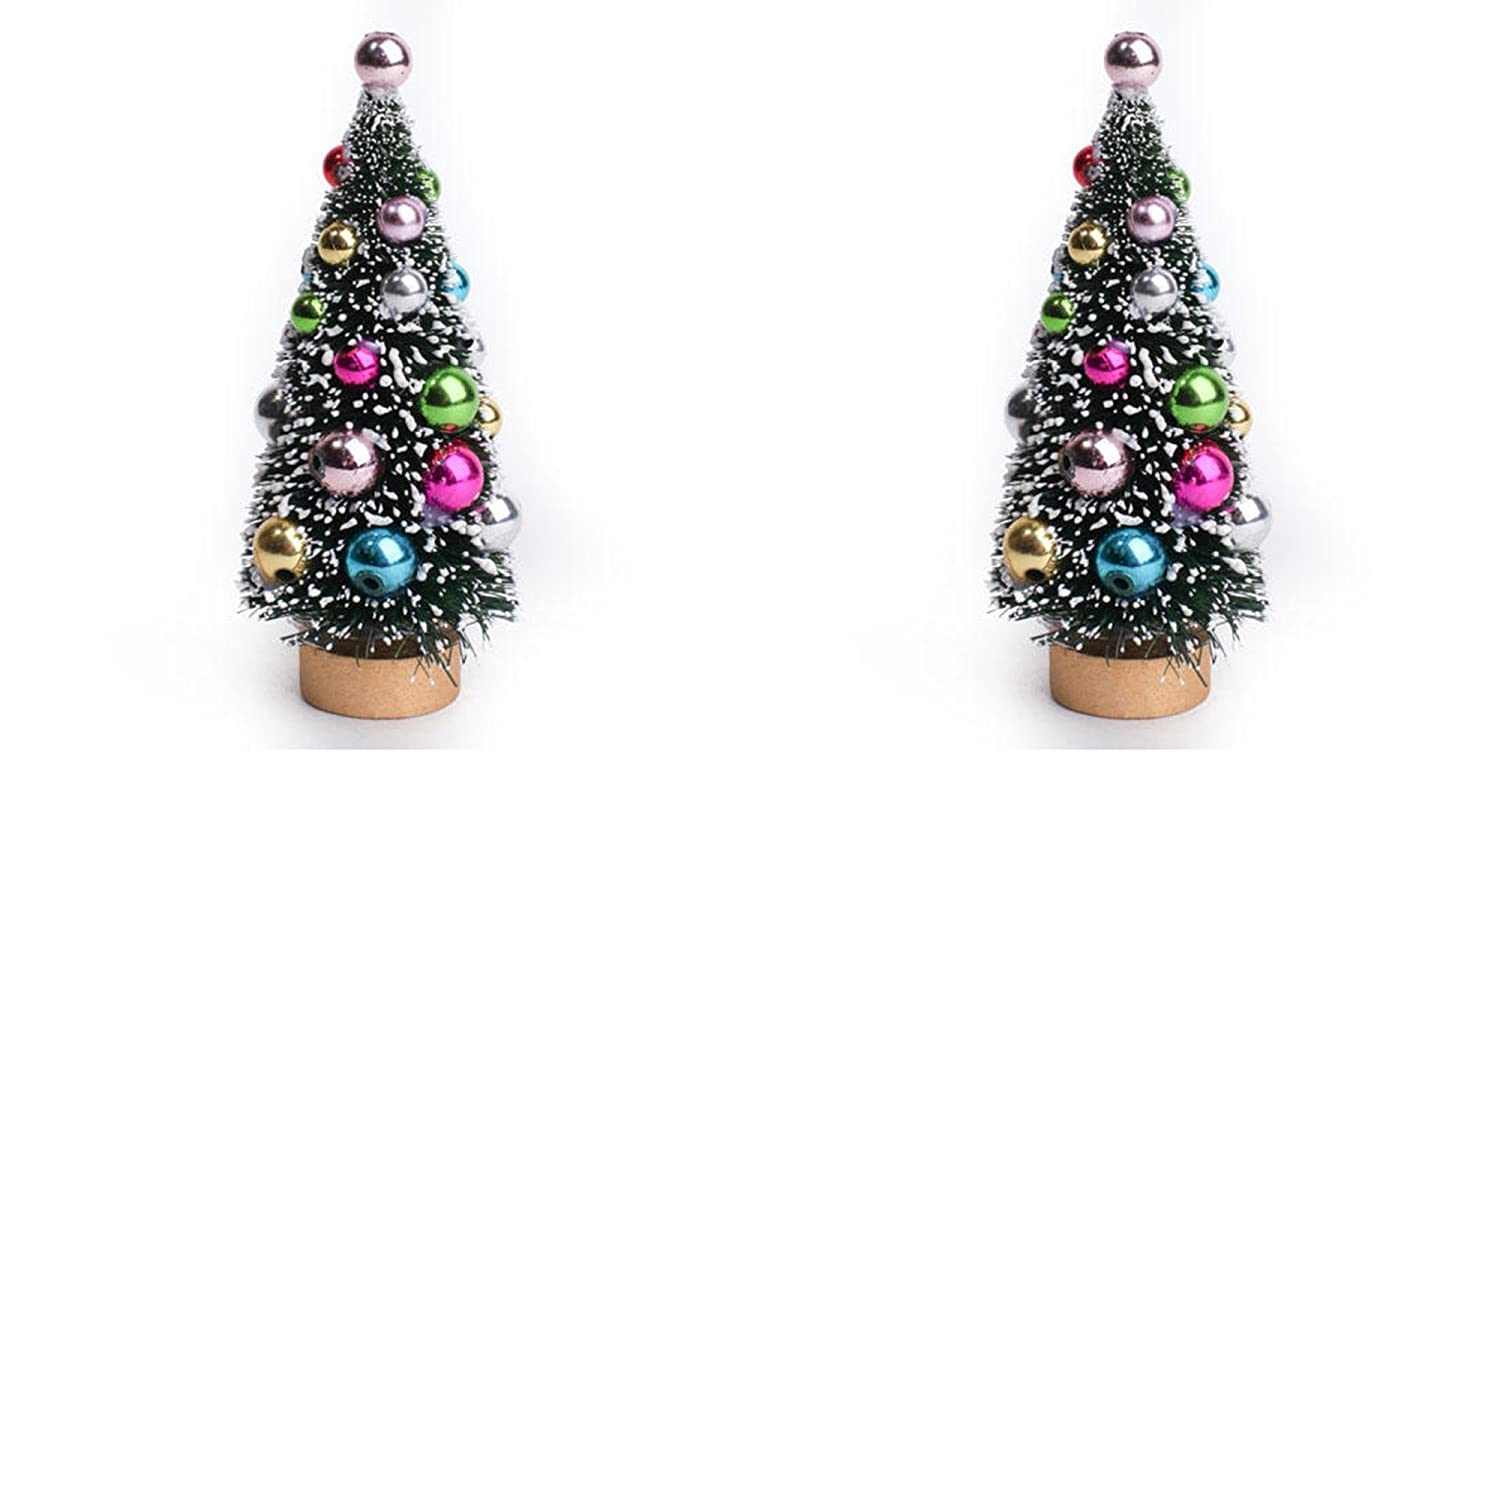 and Designs for Christmas and Holidays Crafts Factory Direct Craft Frosted /& Decorated Mini Green Sisal Christmas Tree for Displays